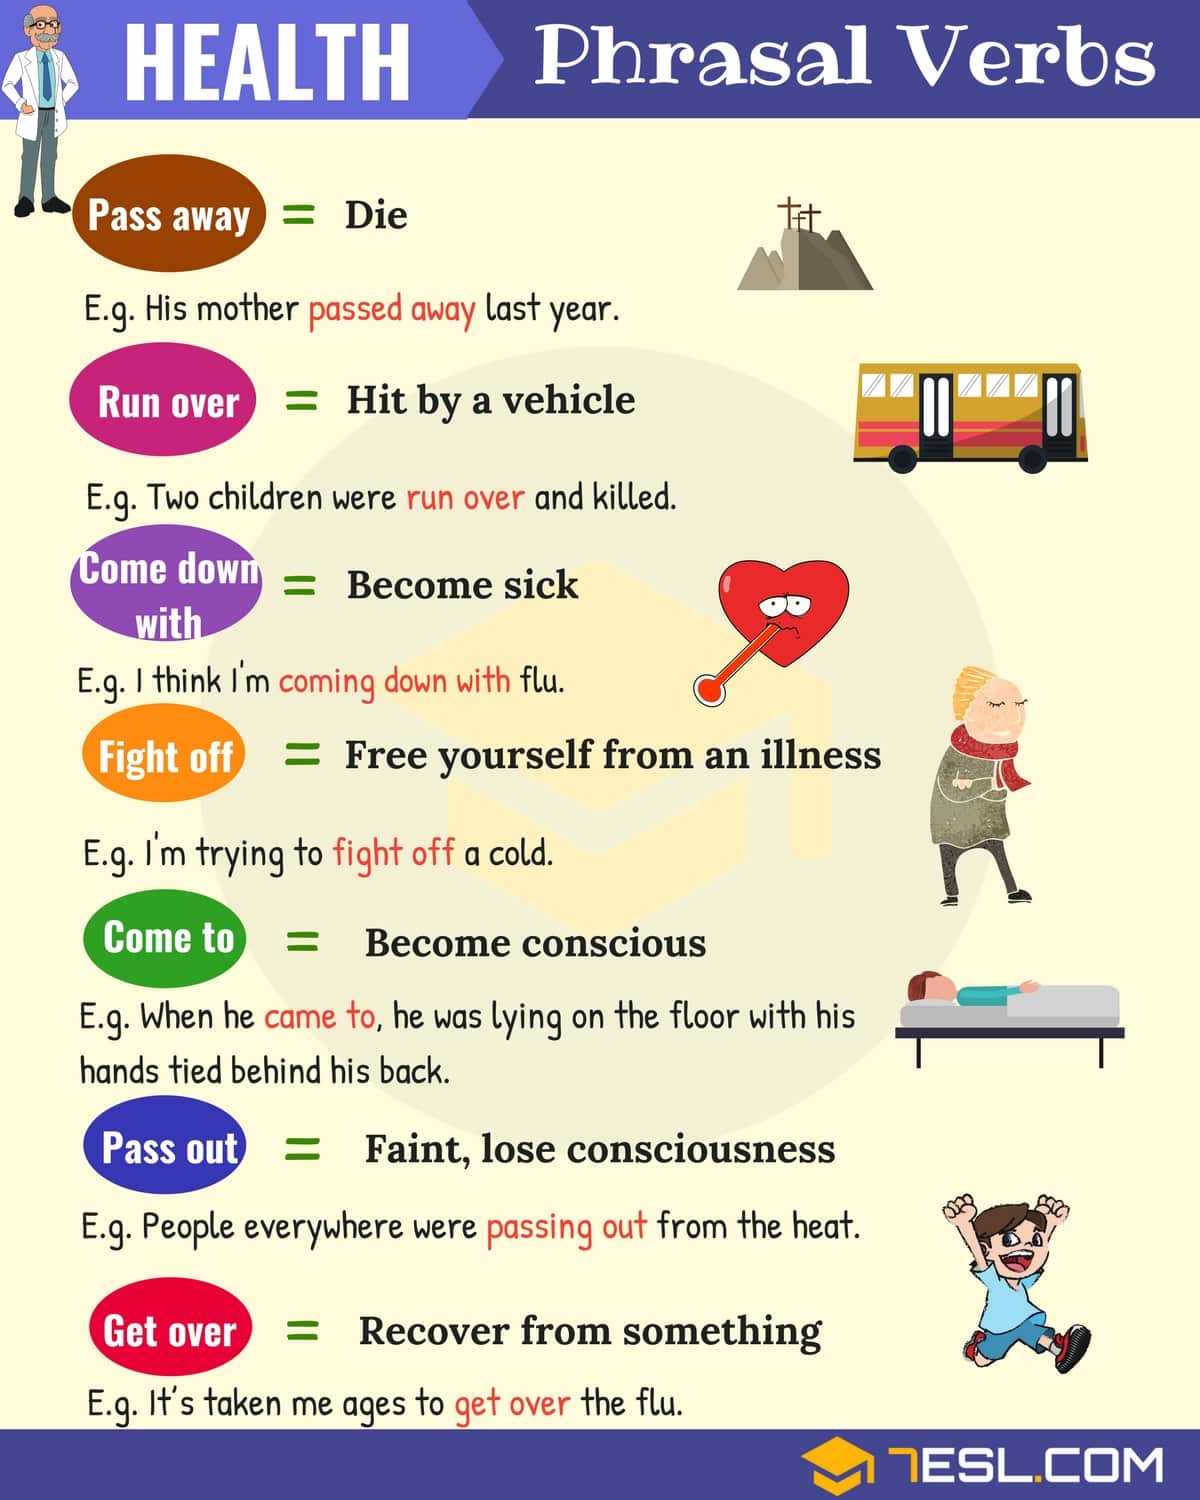 Health Phrasal Verbs With Meaning And Examples